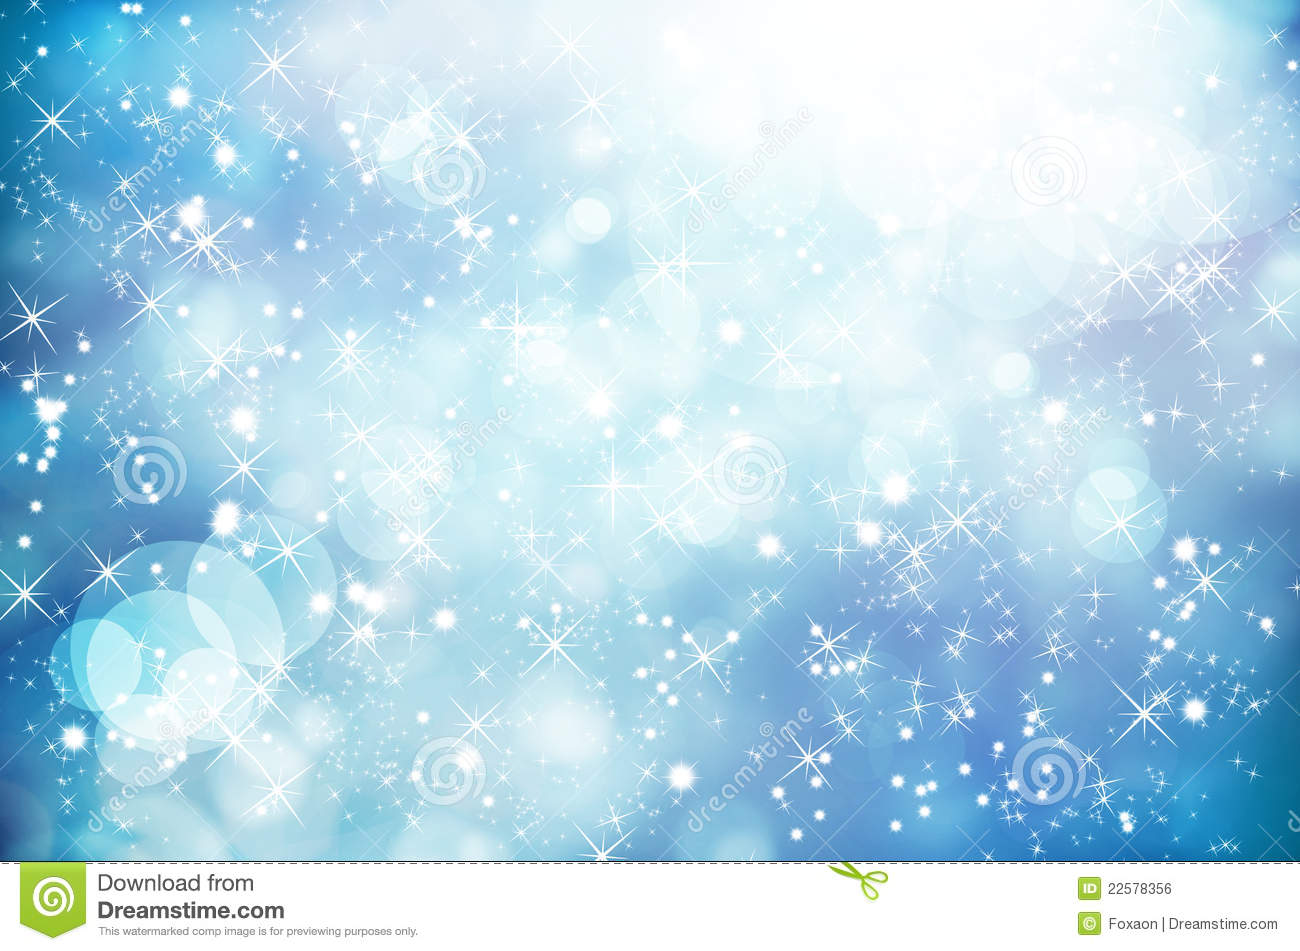 Collection of Christmas Winter Backgrounds on HDWallpapers